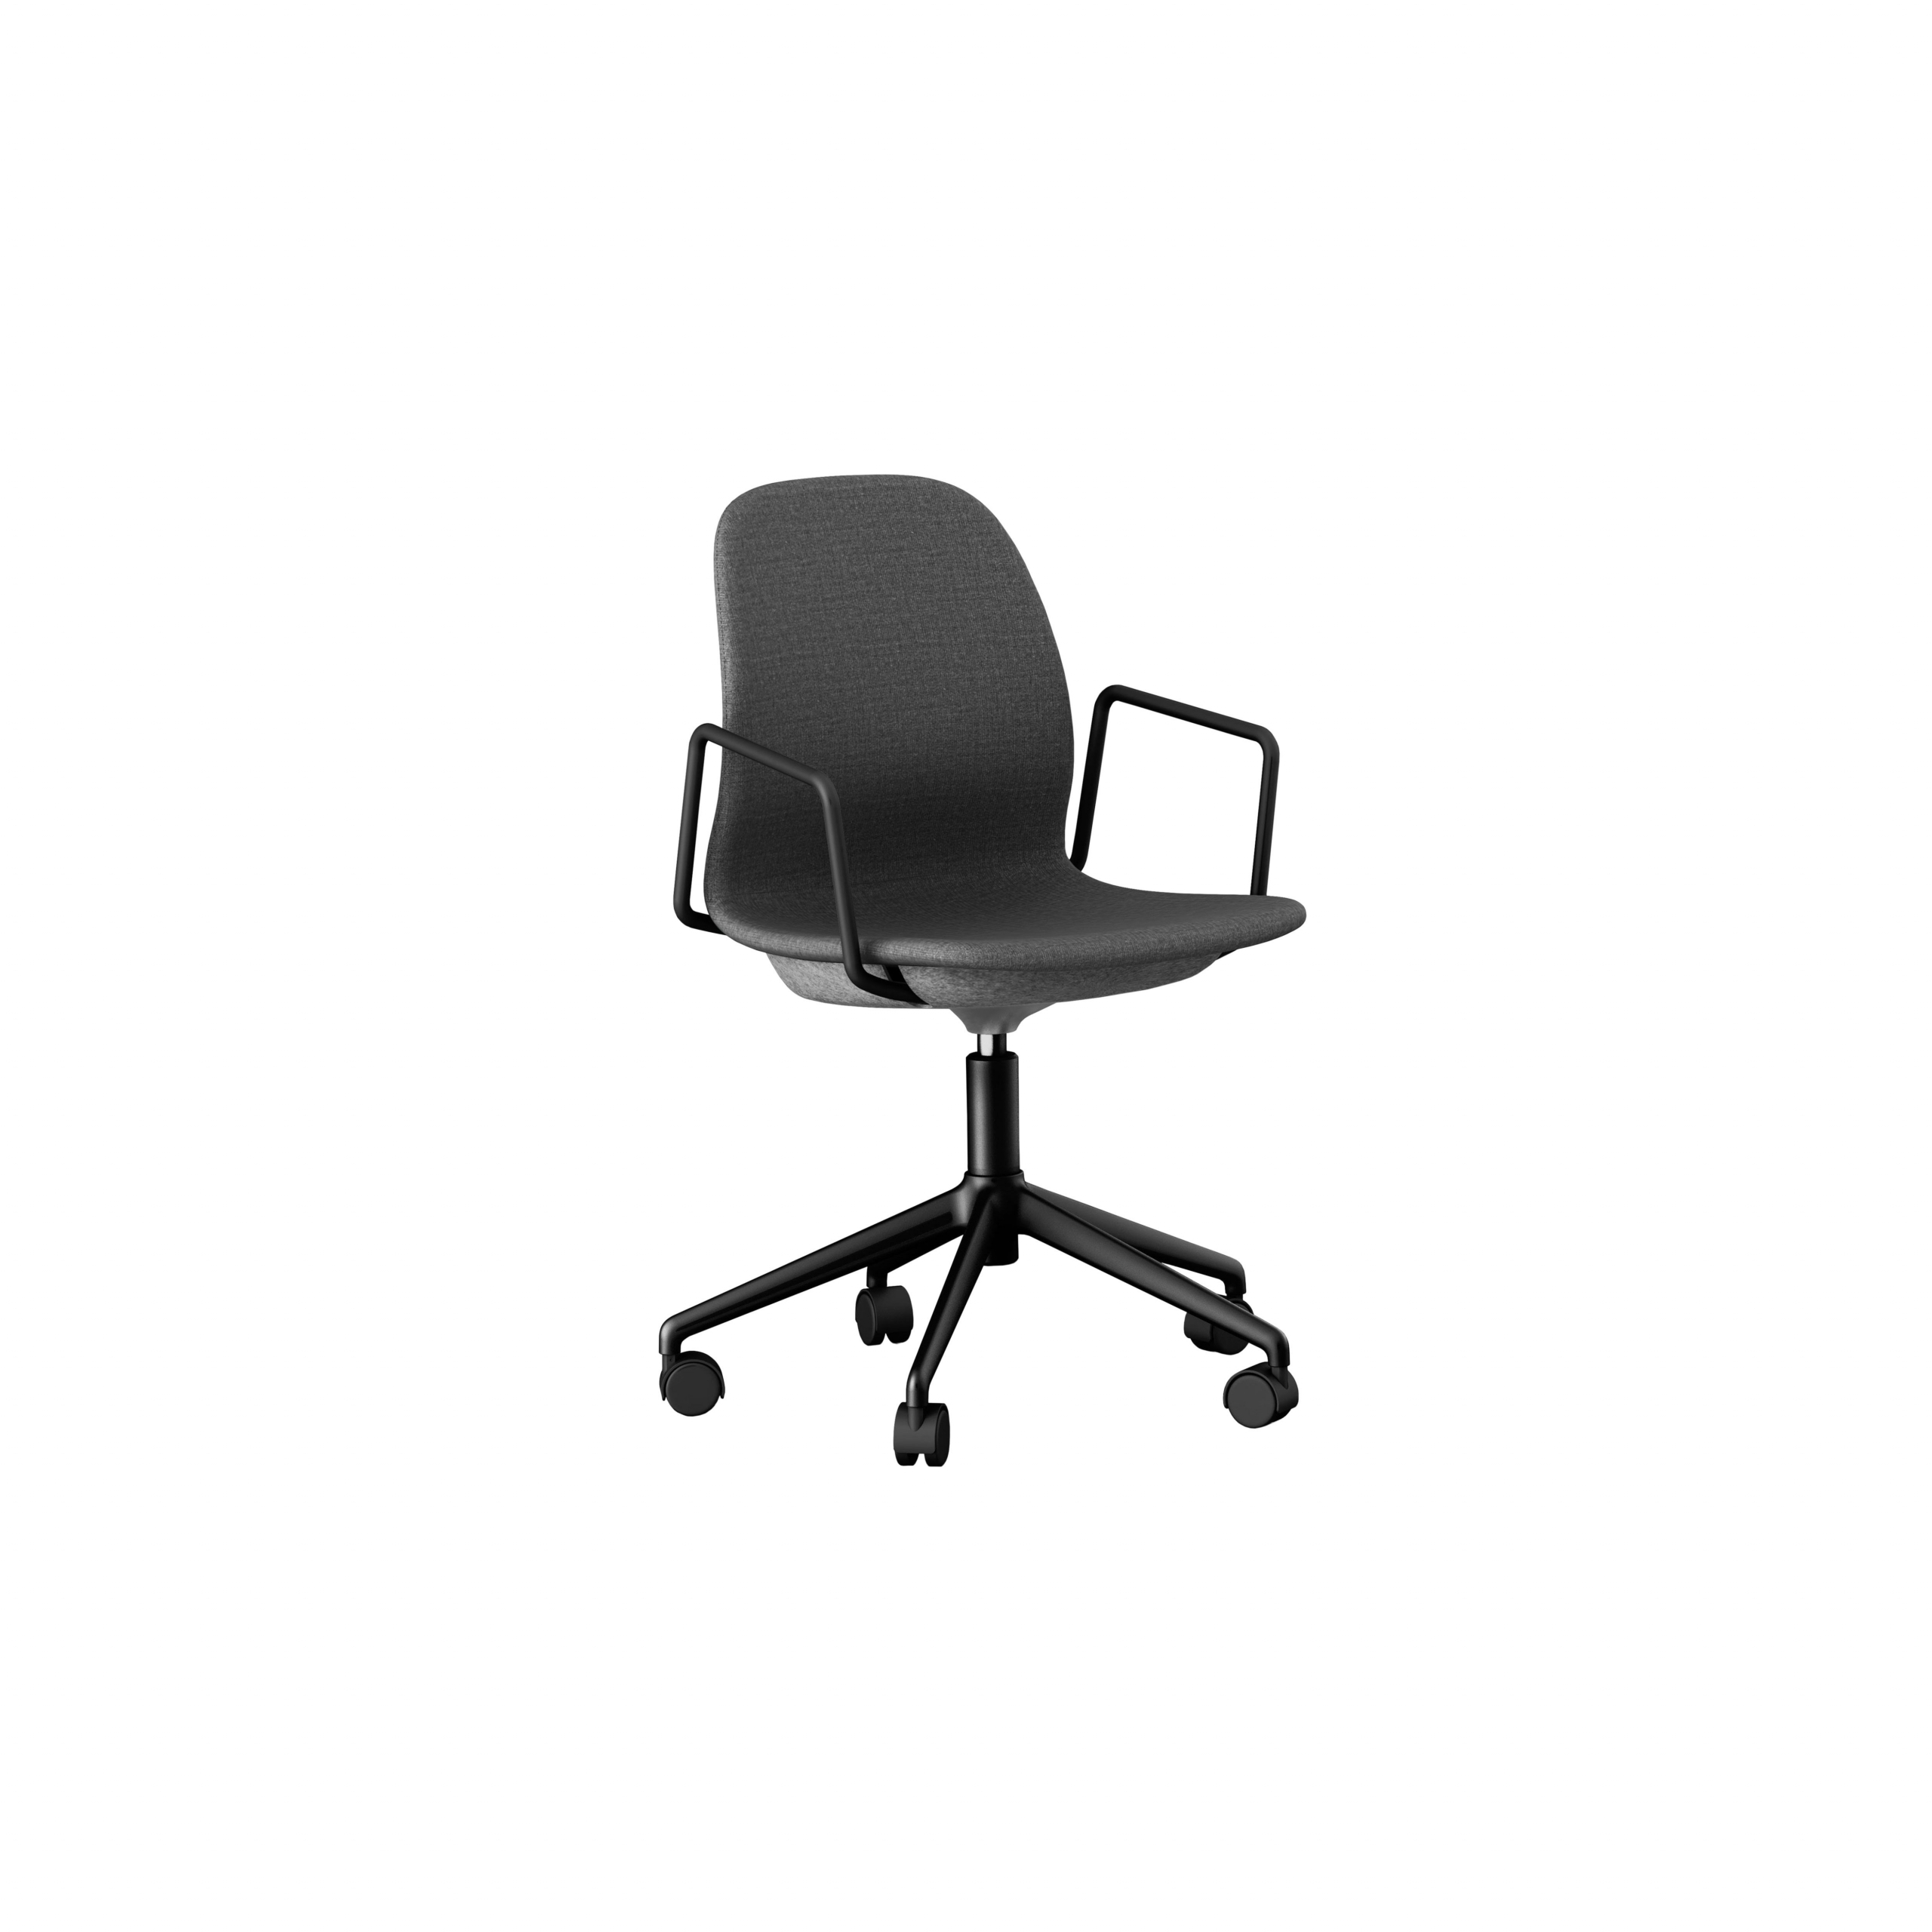 Archie Chair with swivel base